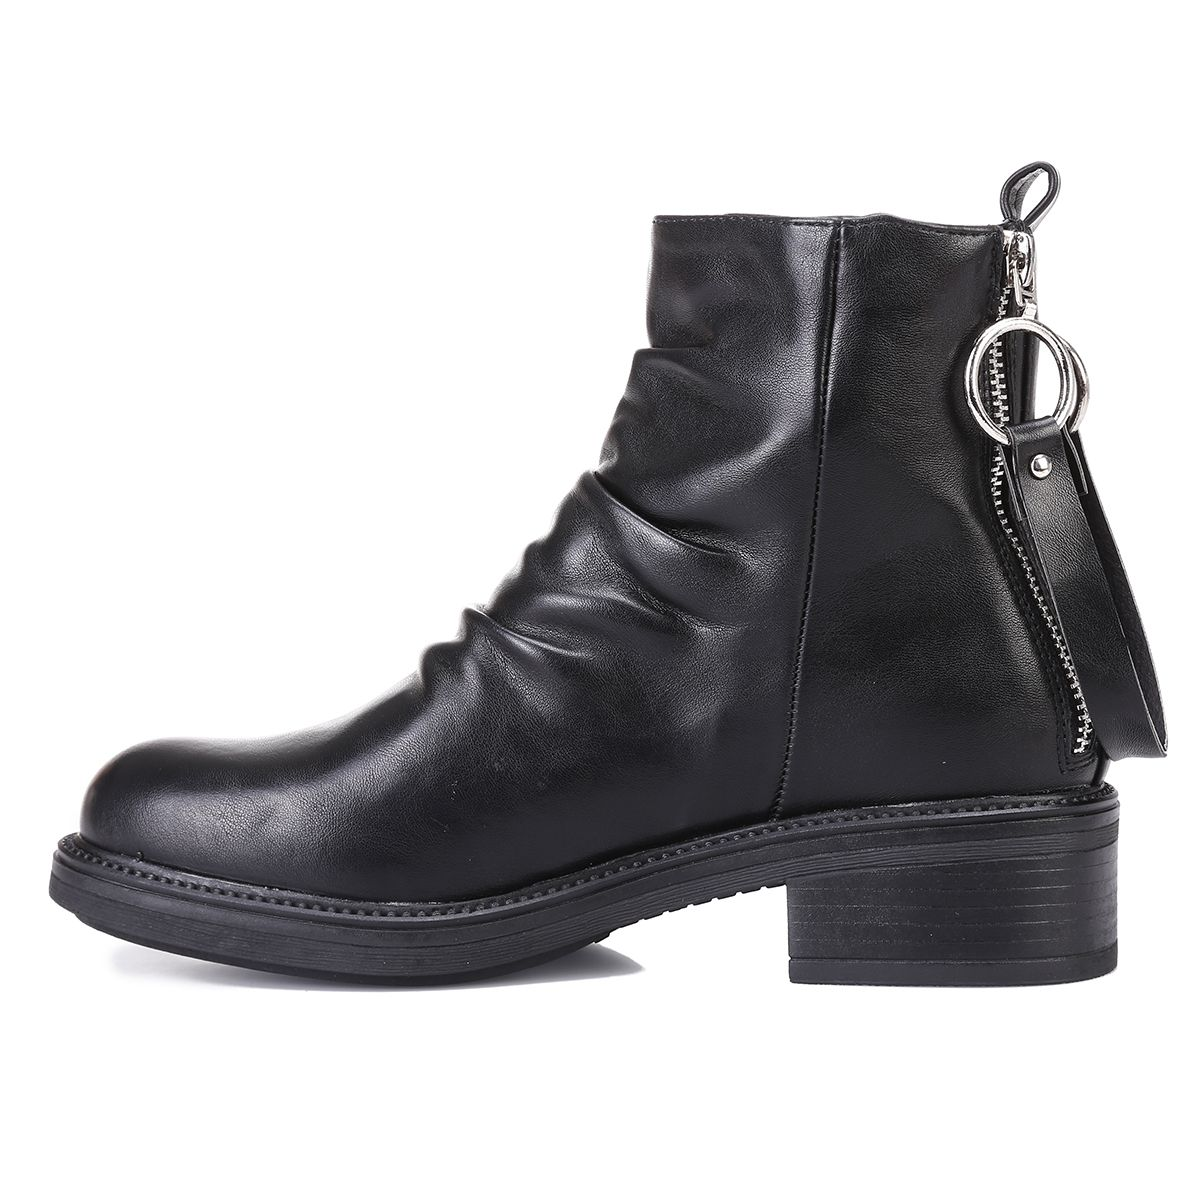 Bottines noires en simili cuir avec sangle et zips